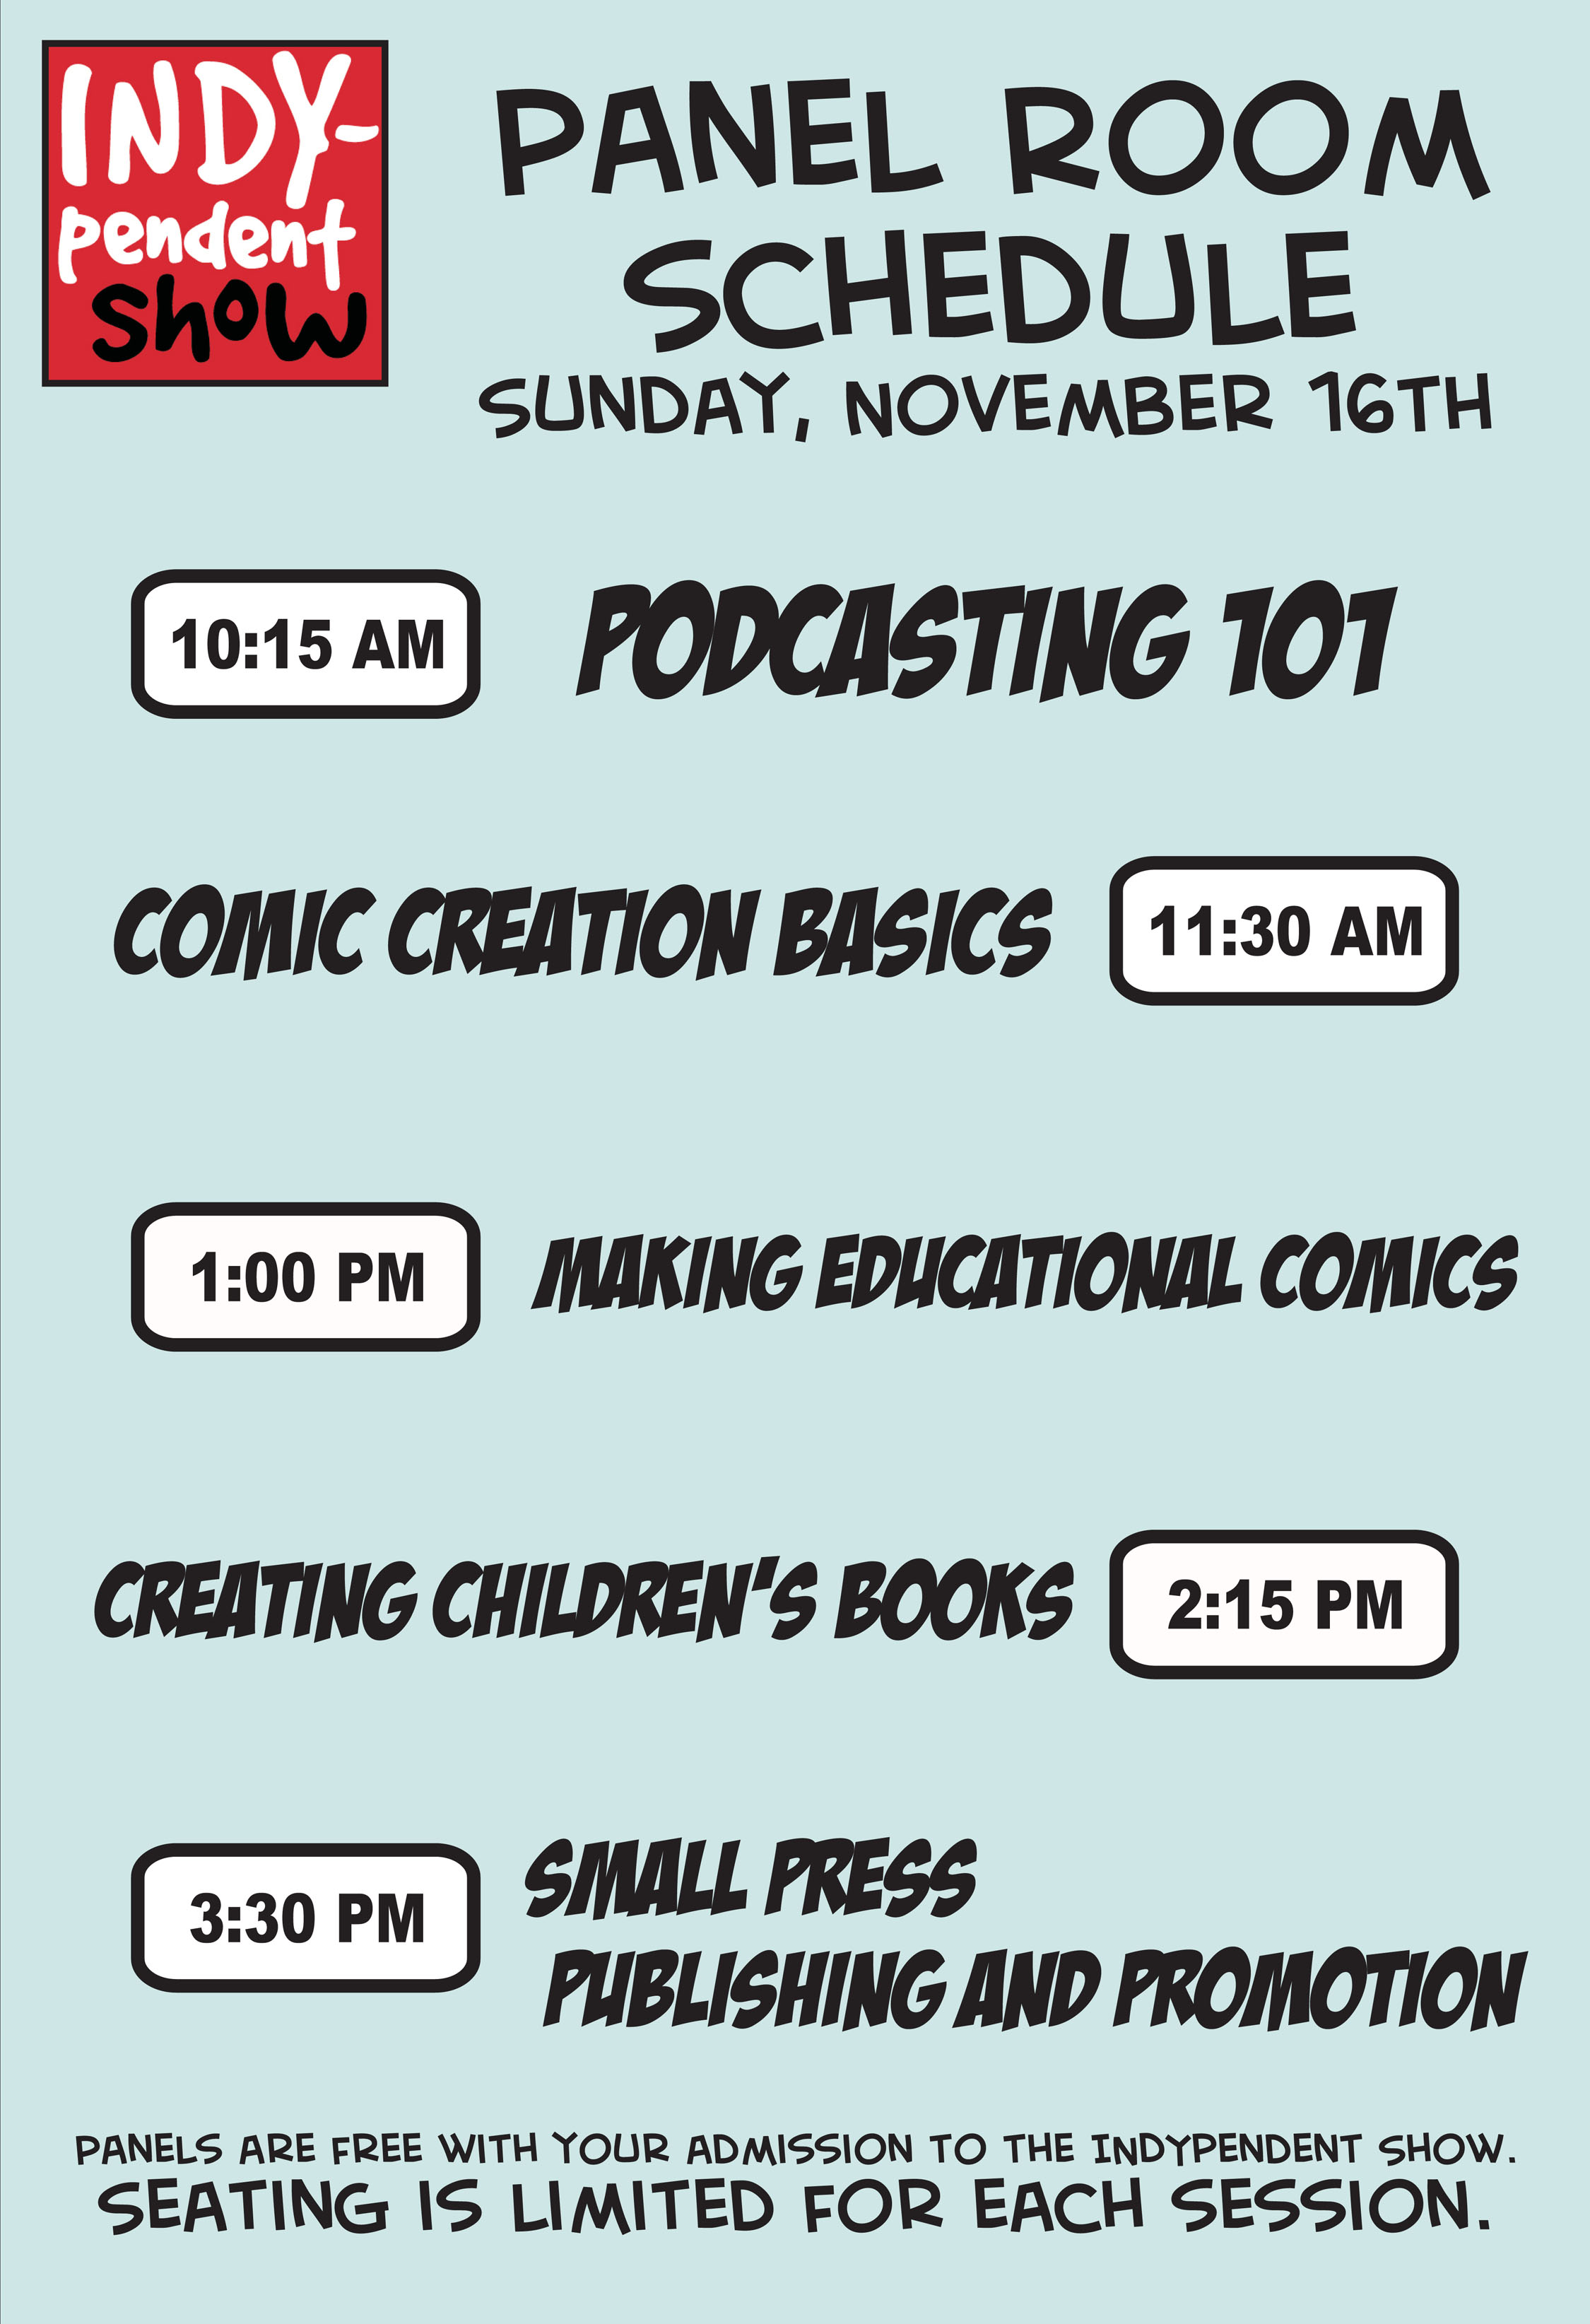 things to do indypendent self publisher show this is going to be a full fun great day for those who are looking into creating their own media or just looking to connect some great people